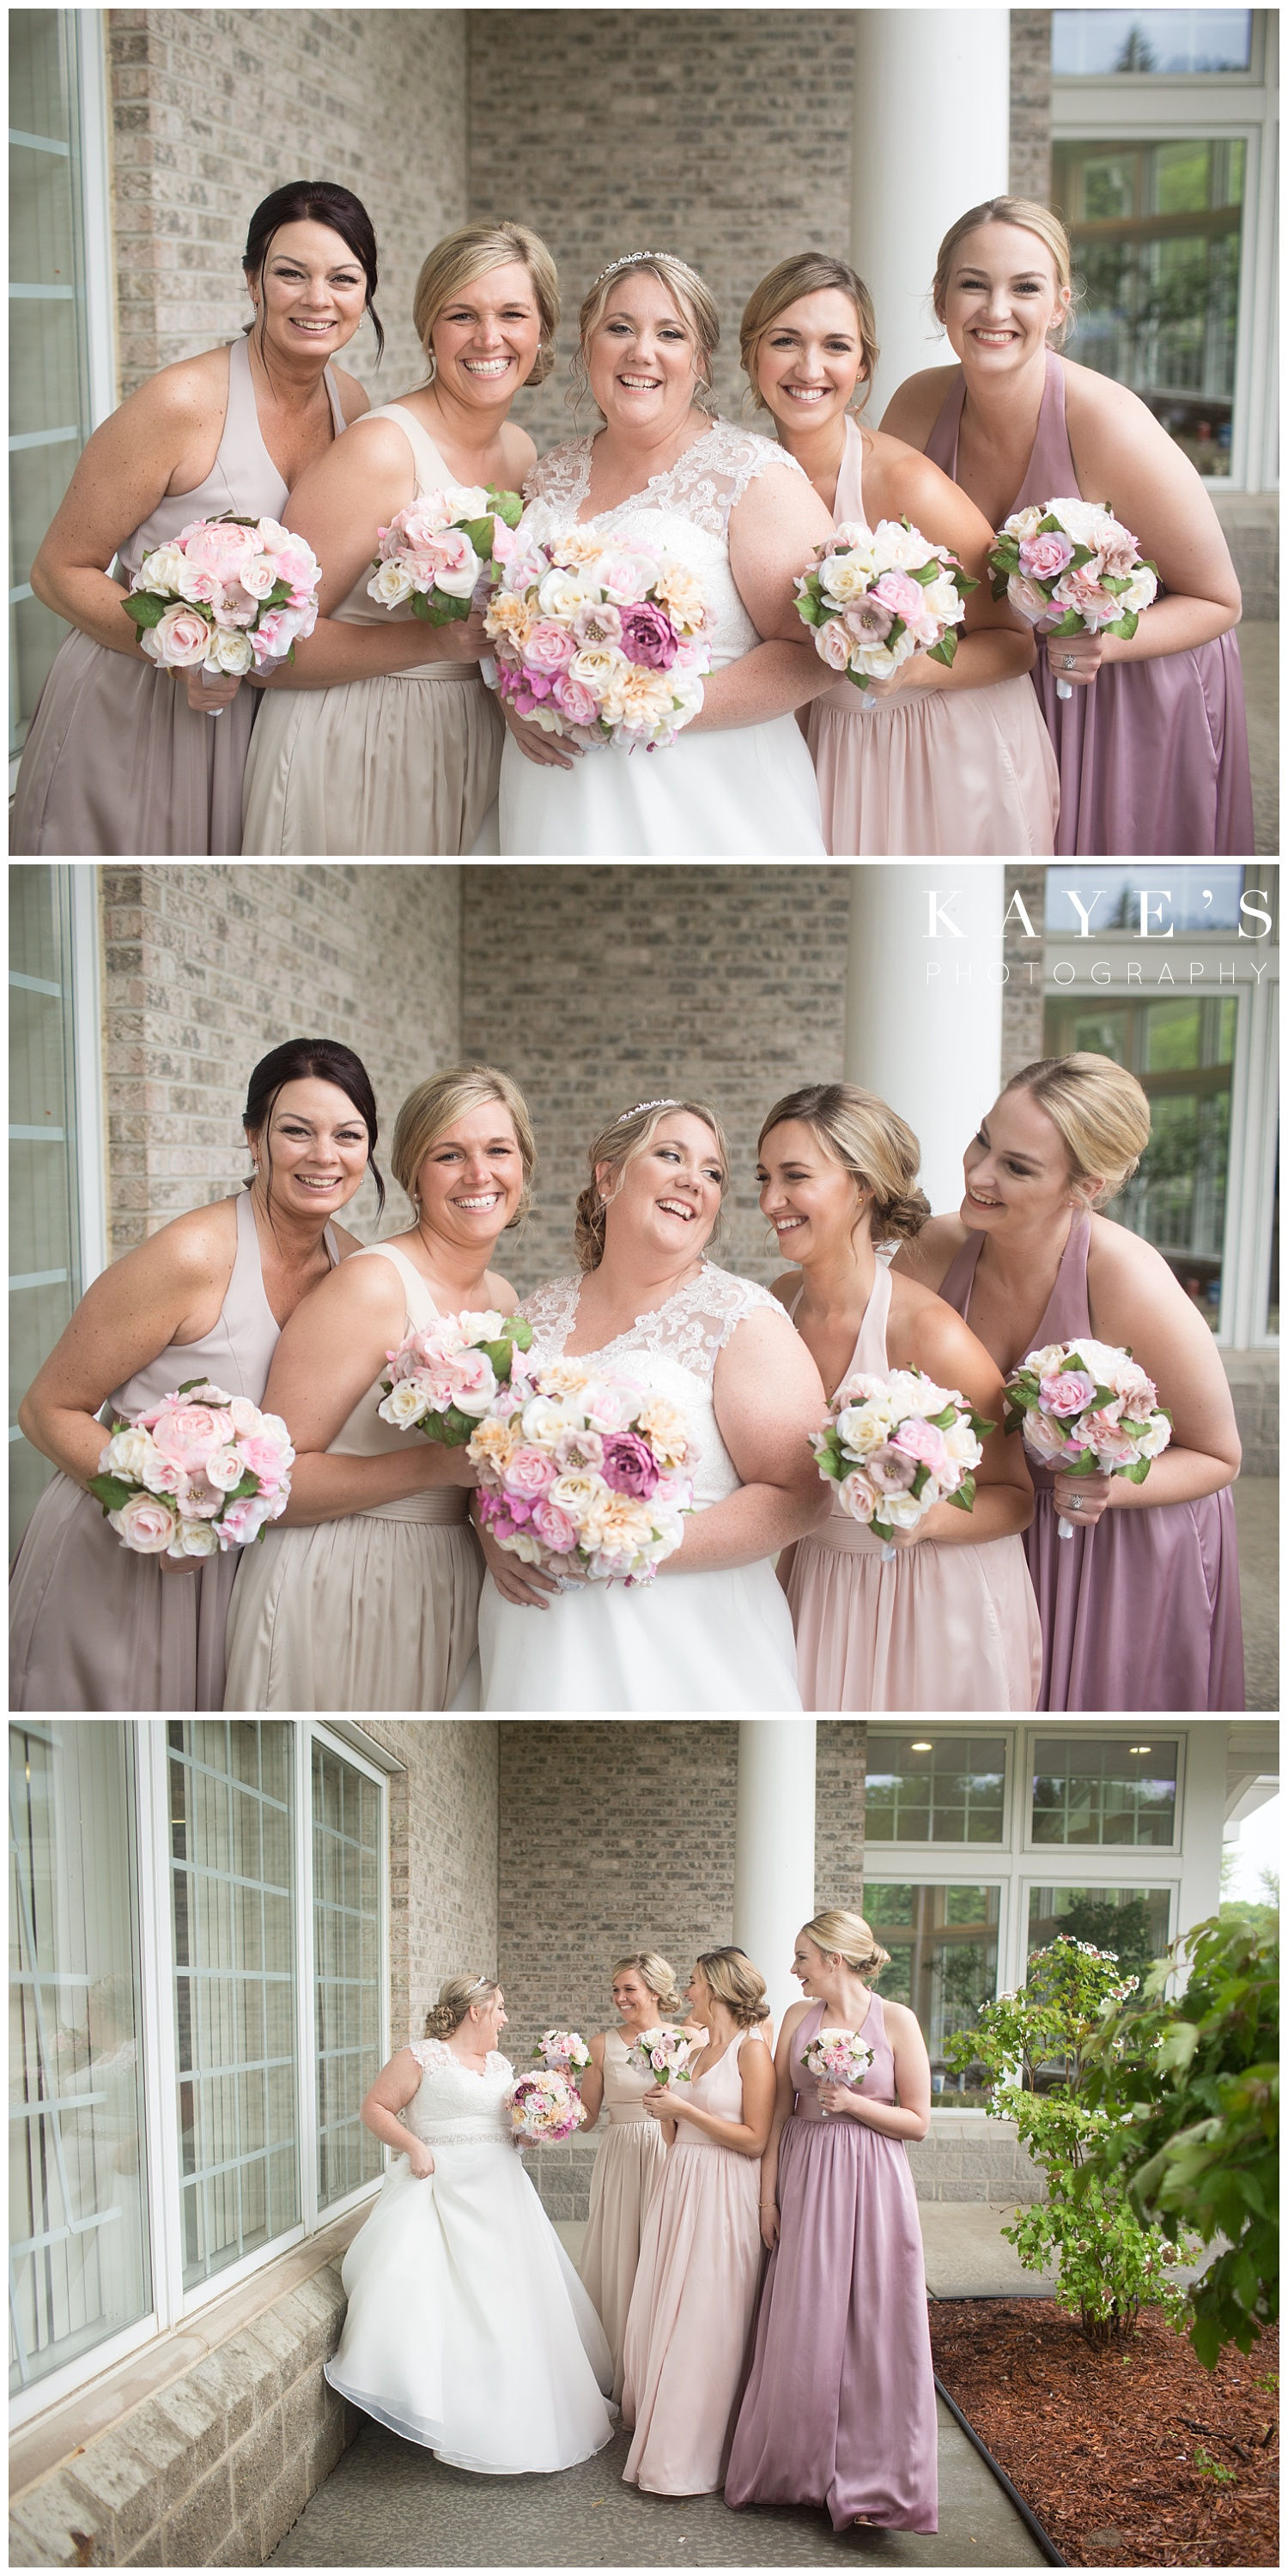 bride and bridesmaids in neutral bridesmaids dresses before the wedding ceremony